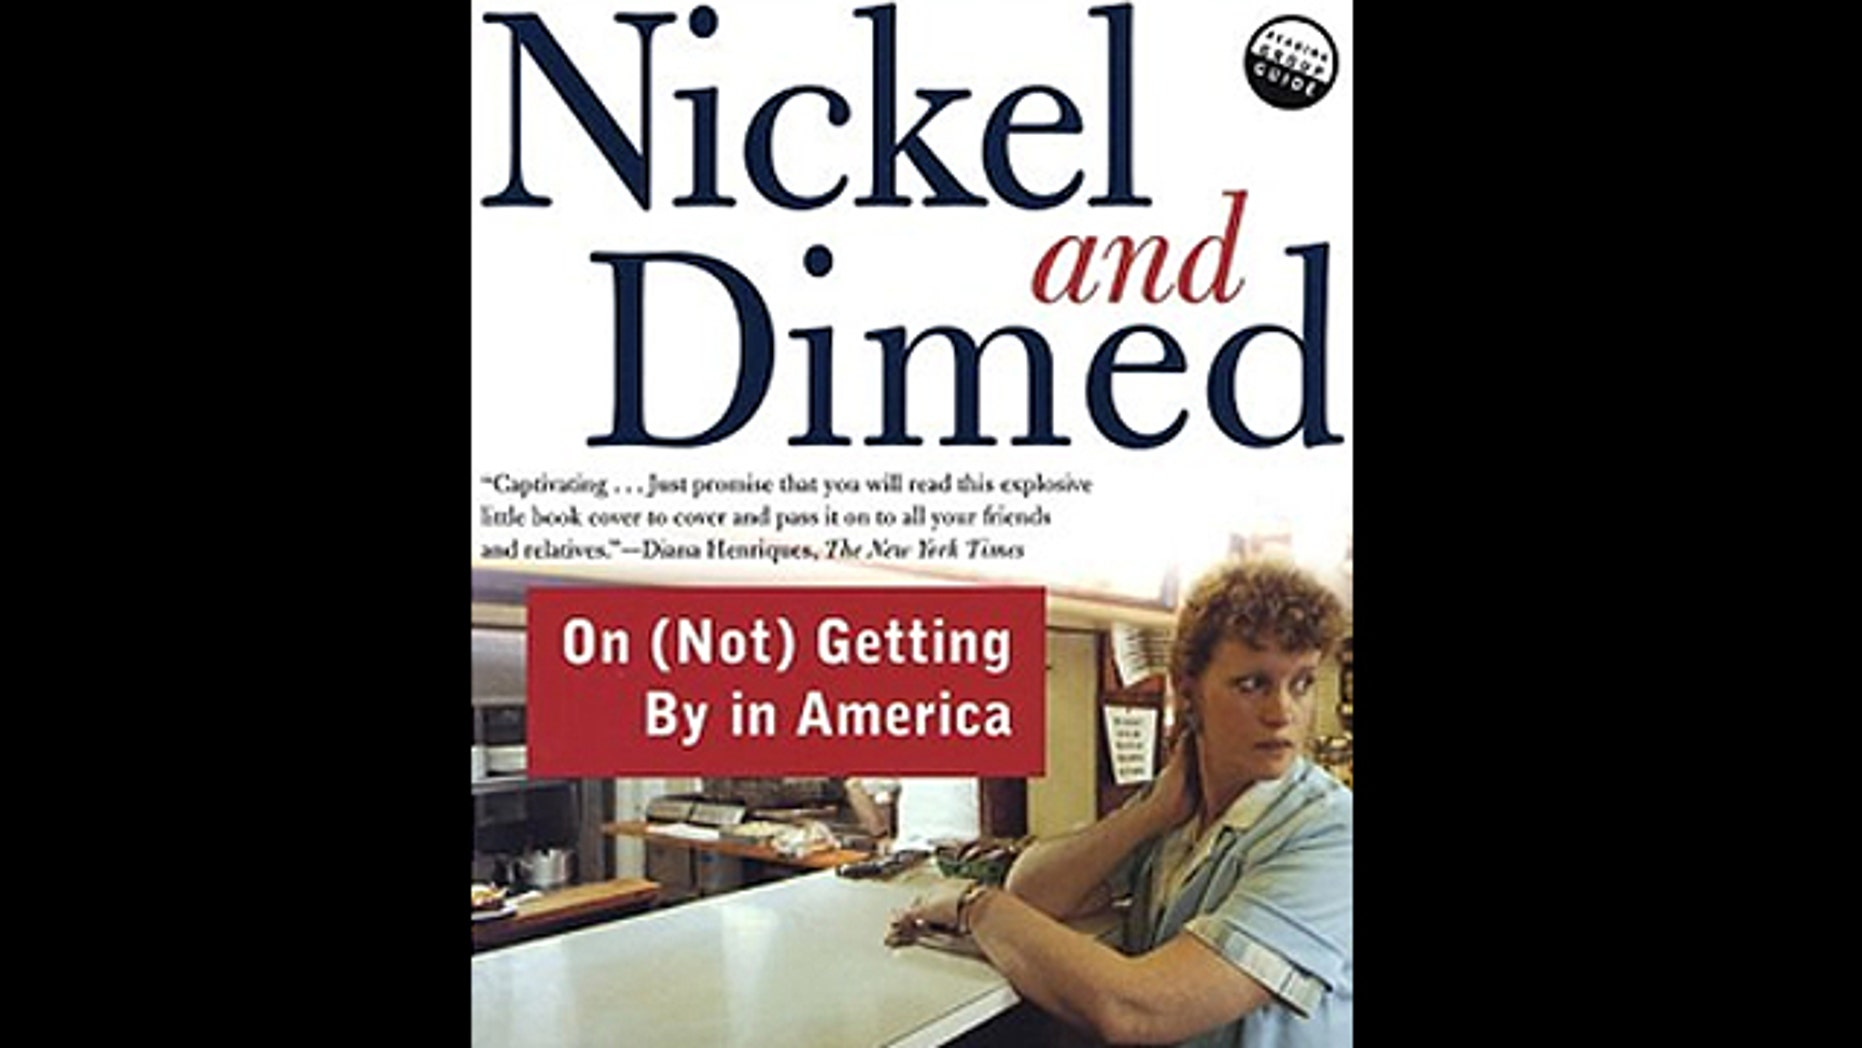 """""""Nickel and Dimed: On (Not) Getting By in America,"""" by Barbara Ehrenreich."""